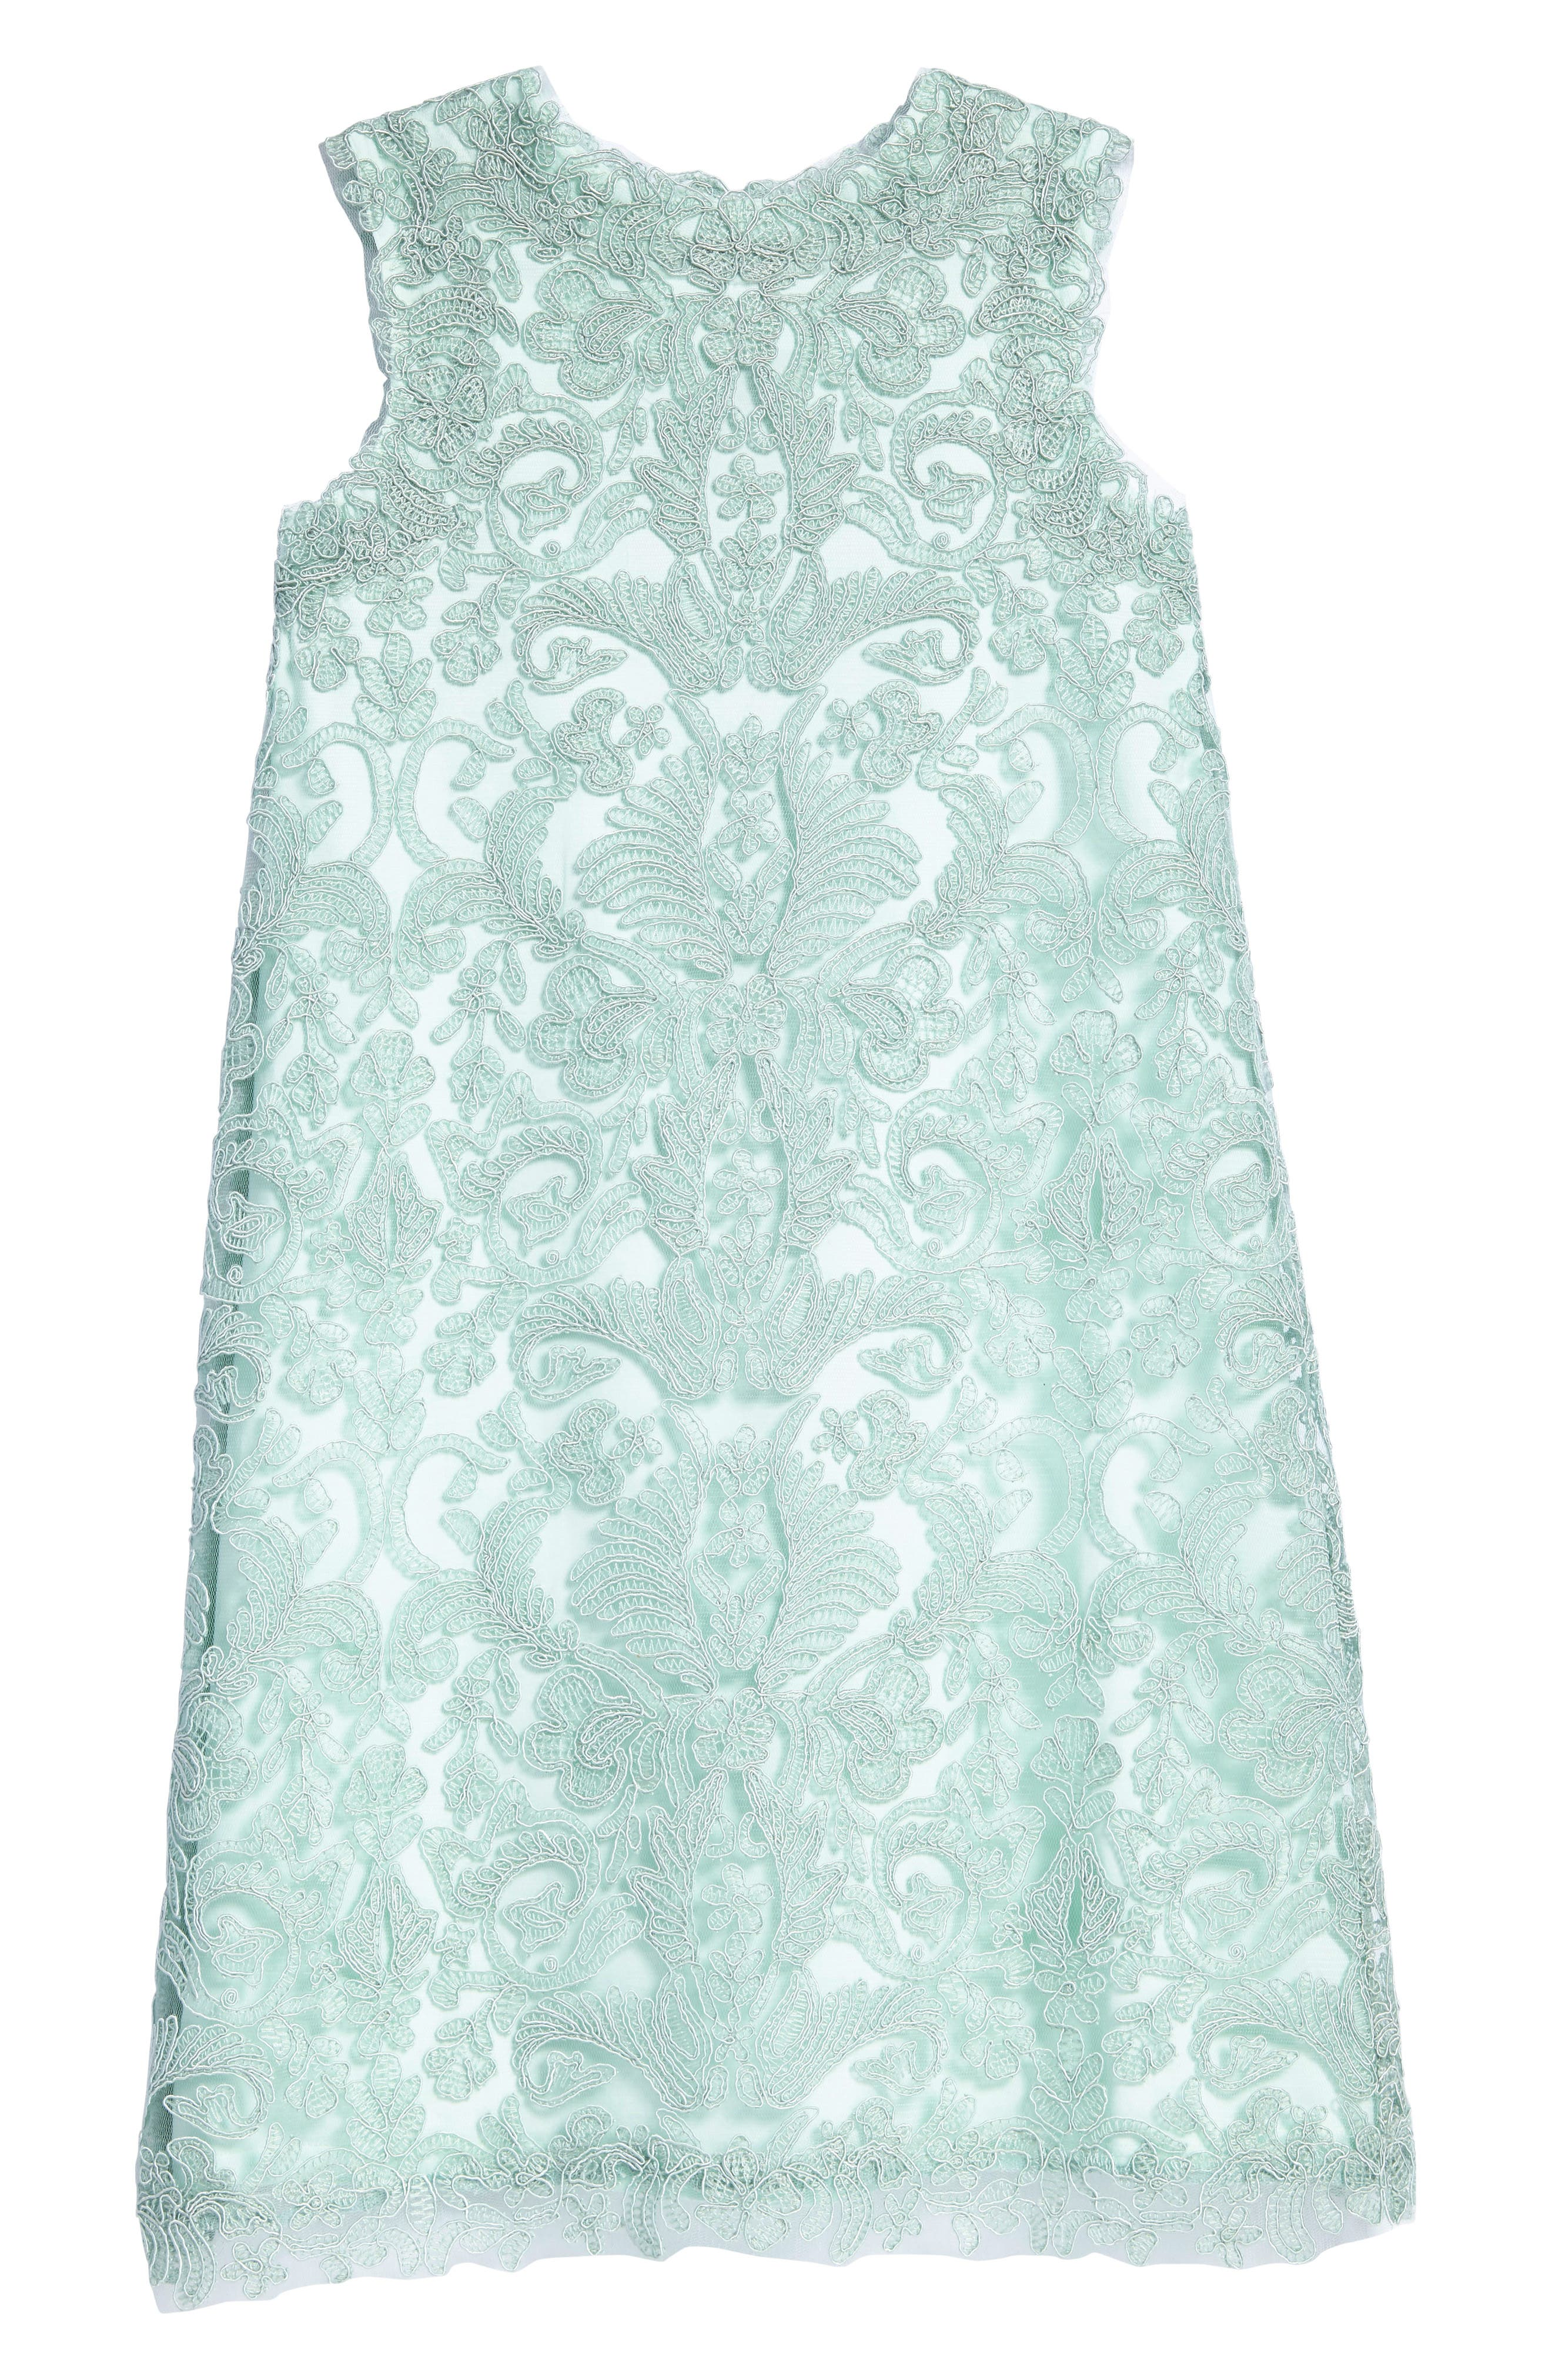 'Honeysuckle' Embroidered Tulle Dress,                         Main,                         color, Mint